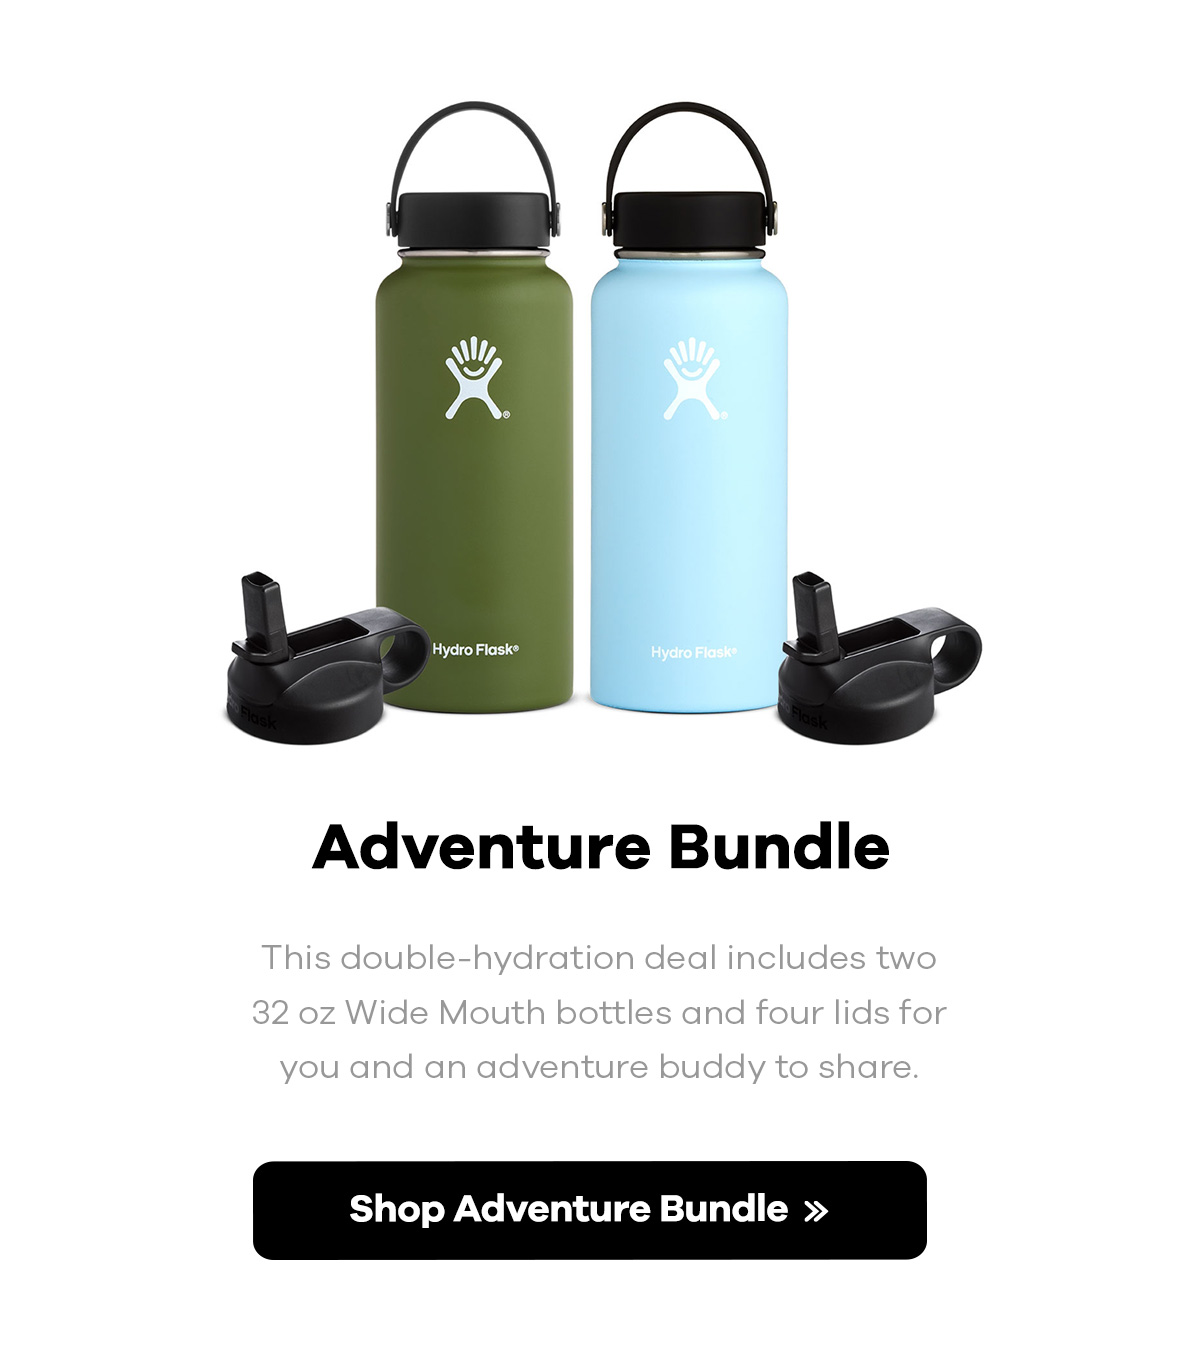 Adventure Bundle | This double-hydration deal includes two 32 oz Wide Mouth bottles and four lids for you and an adventure buddy to share. | Shop Adventure Bundle >>